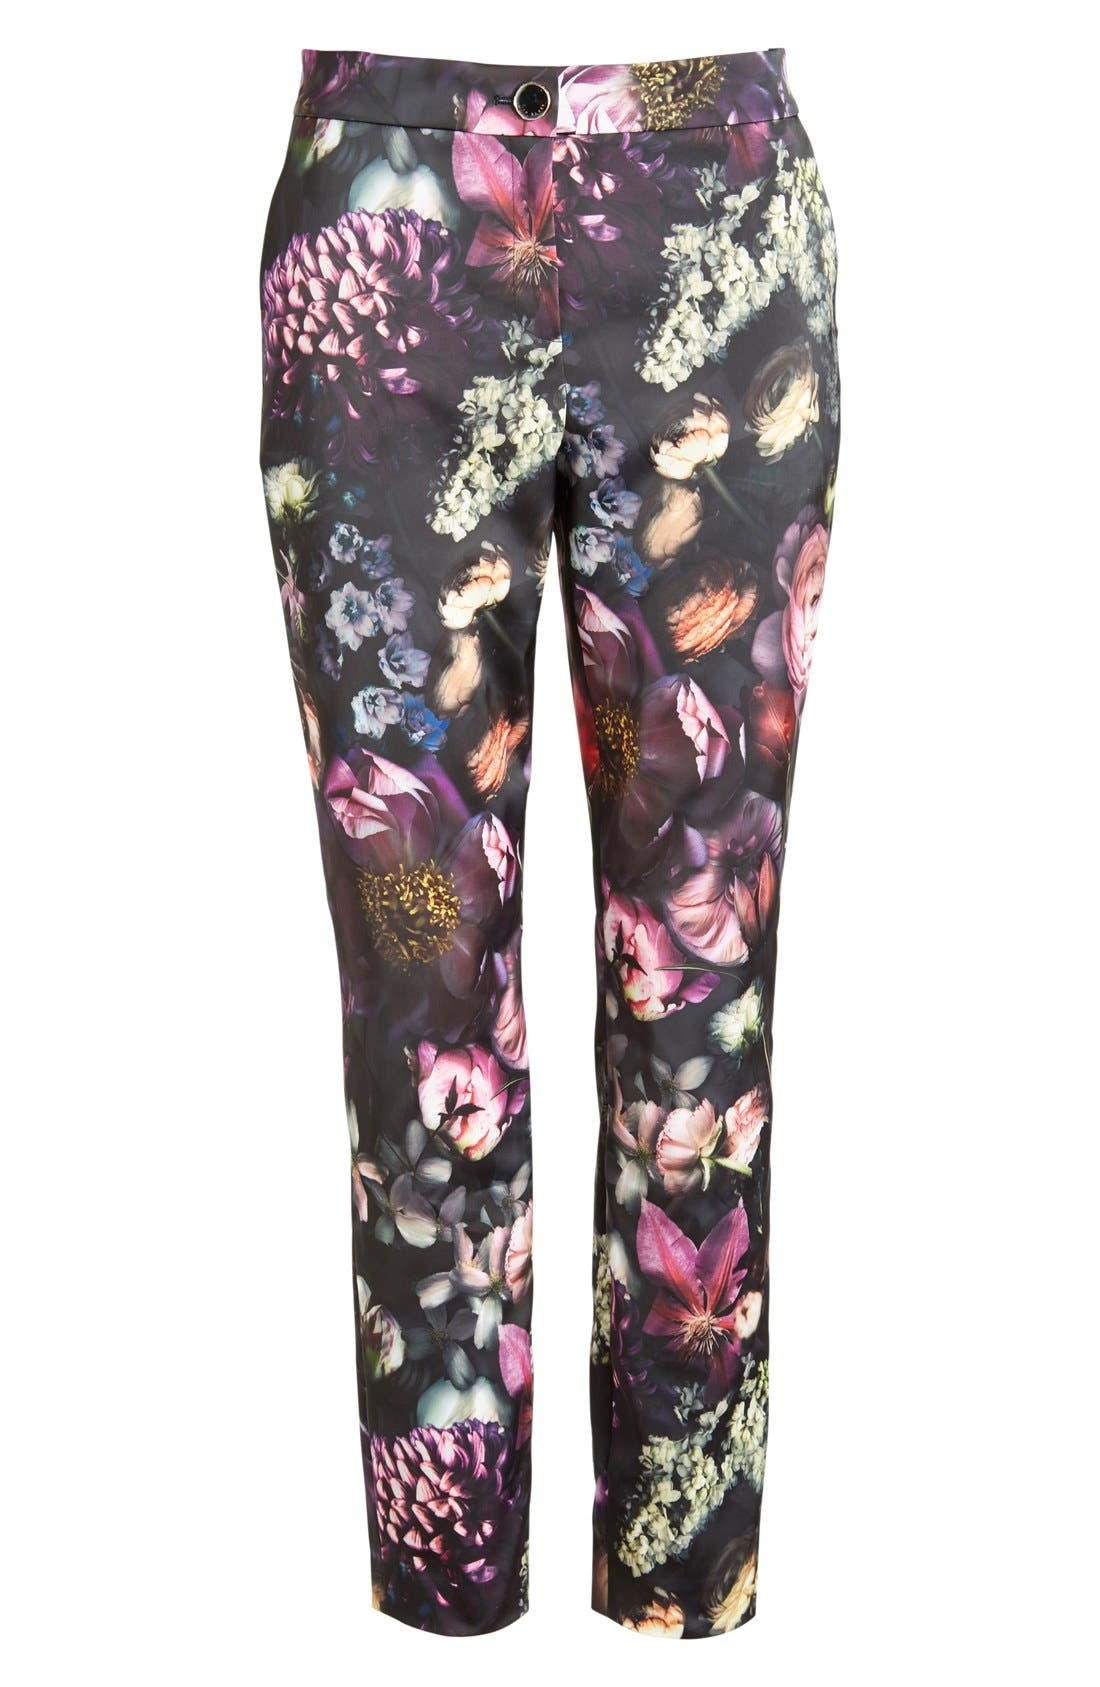 TED BAKER LONDON,                             'Anuja' Floral Print Trousers,                             Alternate thumbnail 2, color,                             021